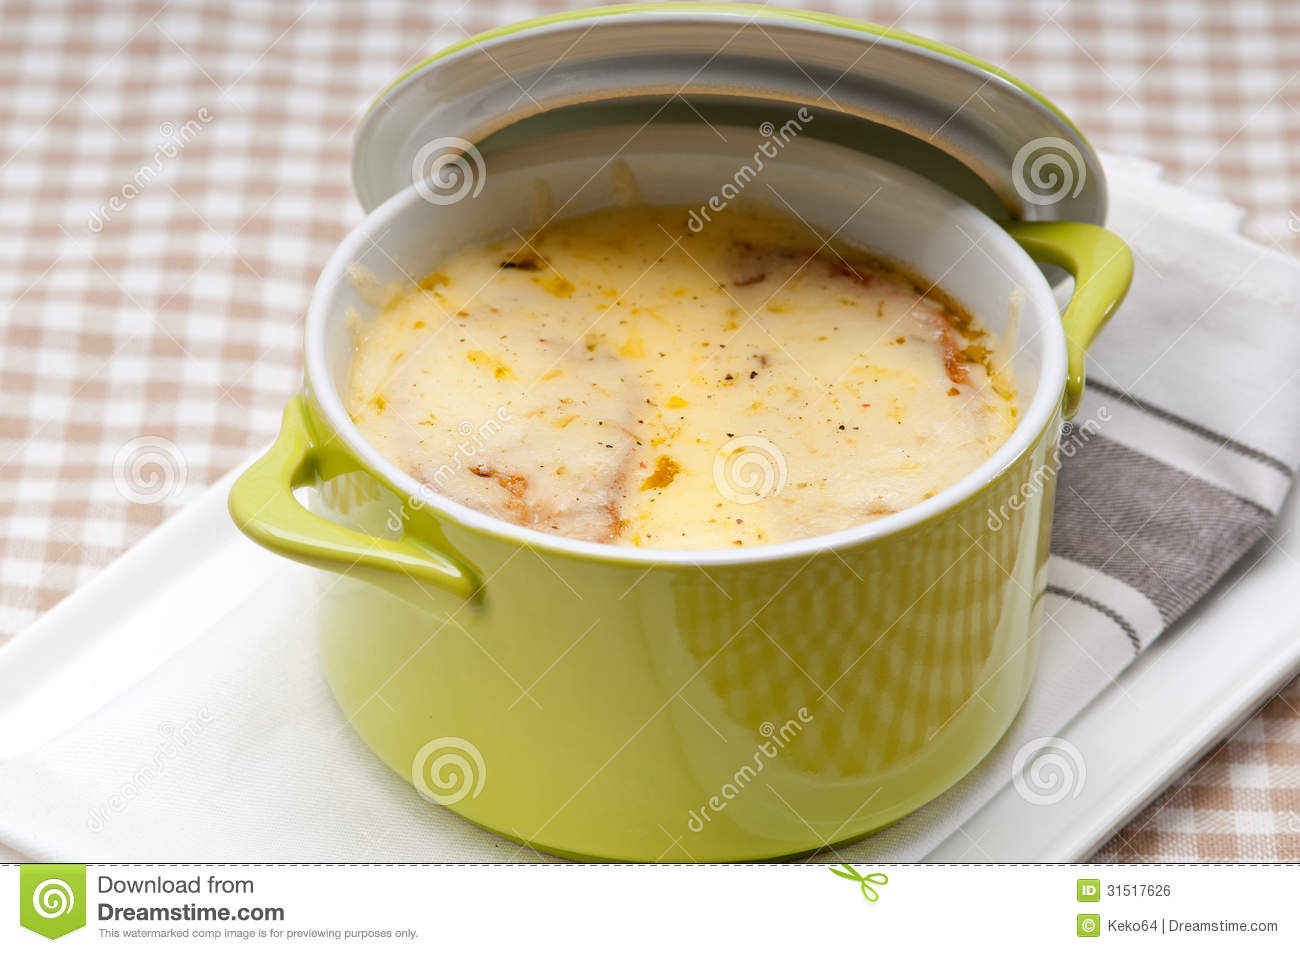 what cheese is melted on french onion soup